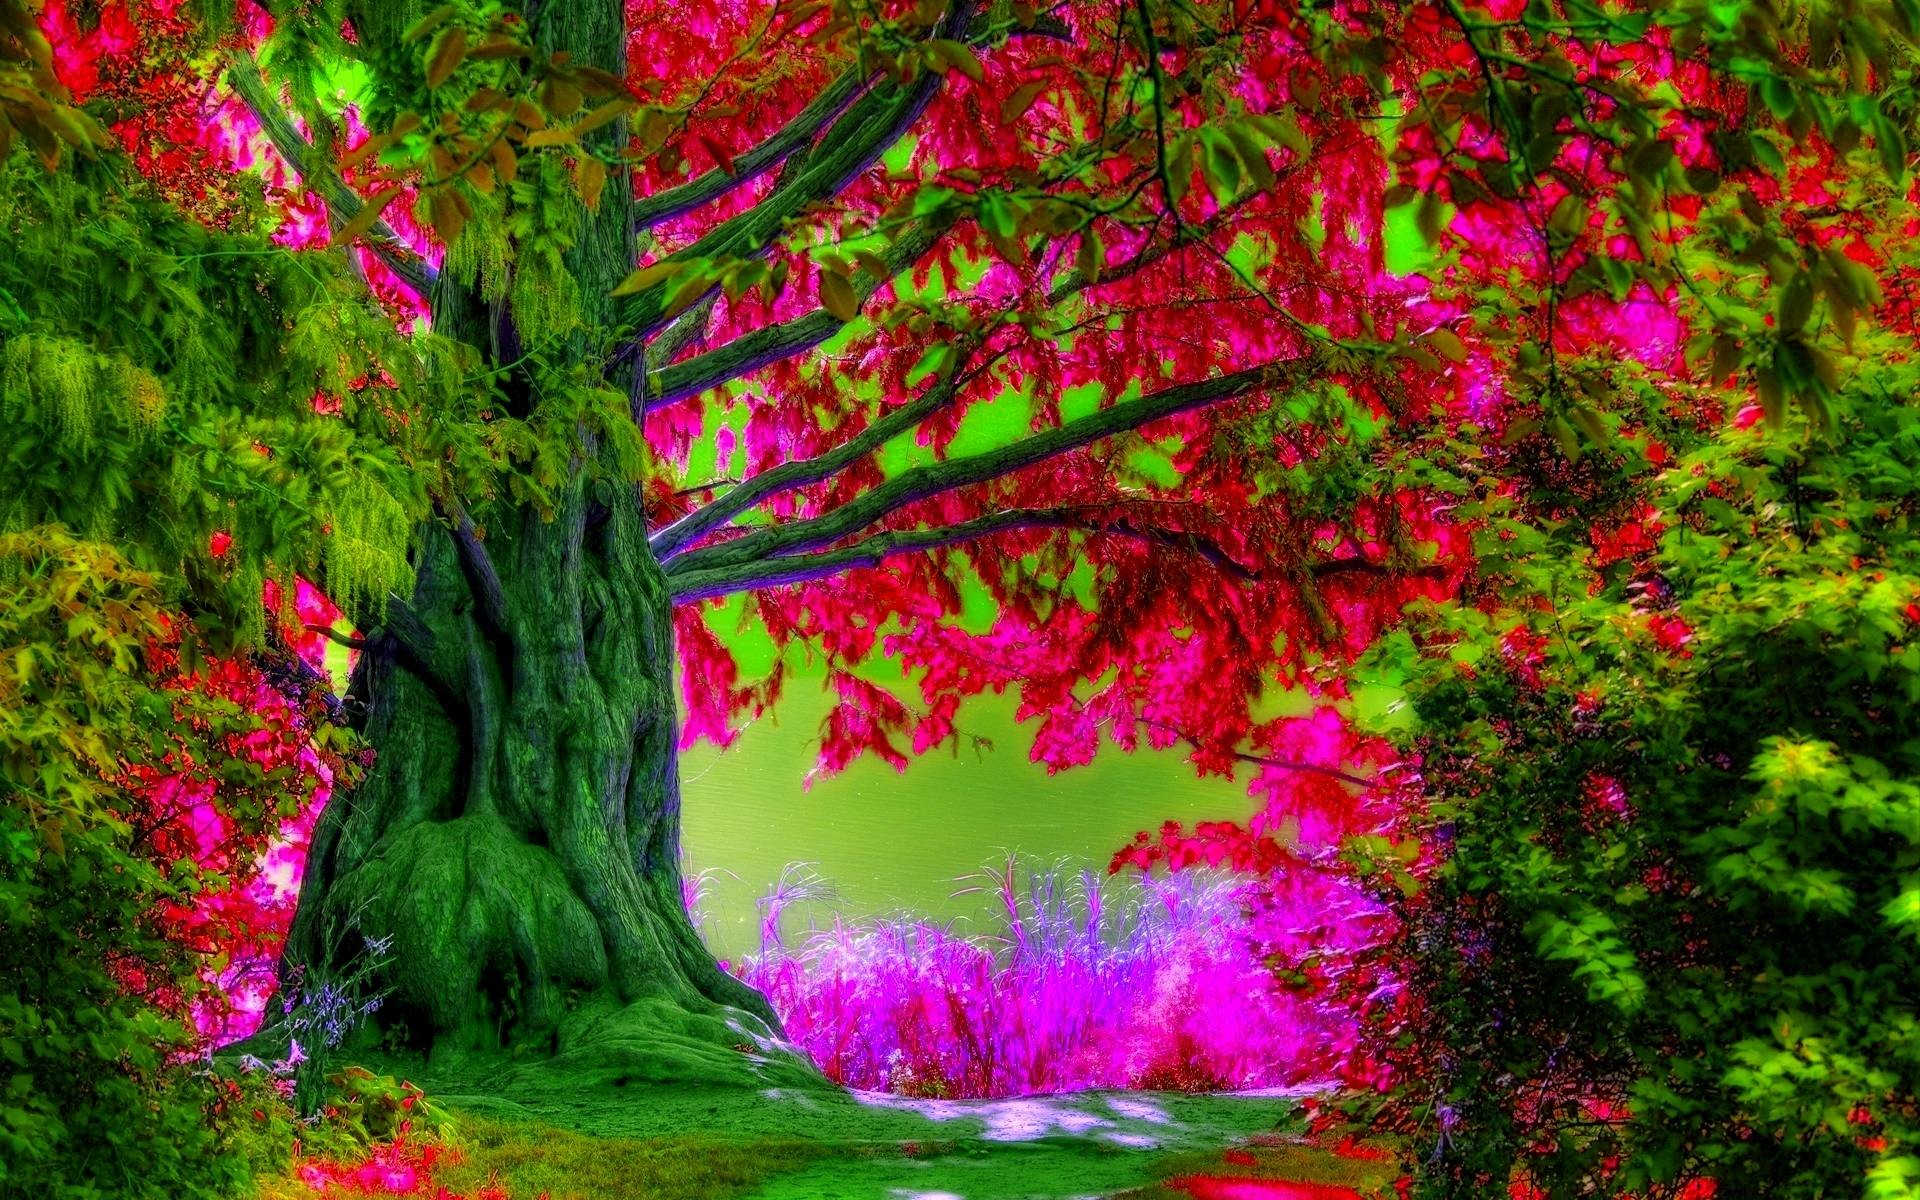 1920x1200 Spring Trees Wallpaper Desktop Widescreen 2 HD Wallpapers | Hdimges.